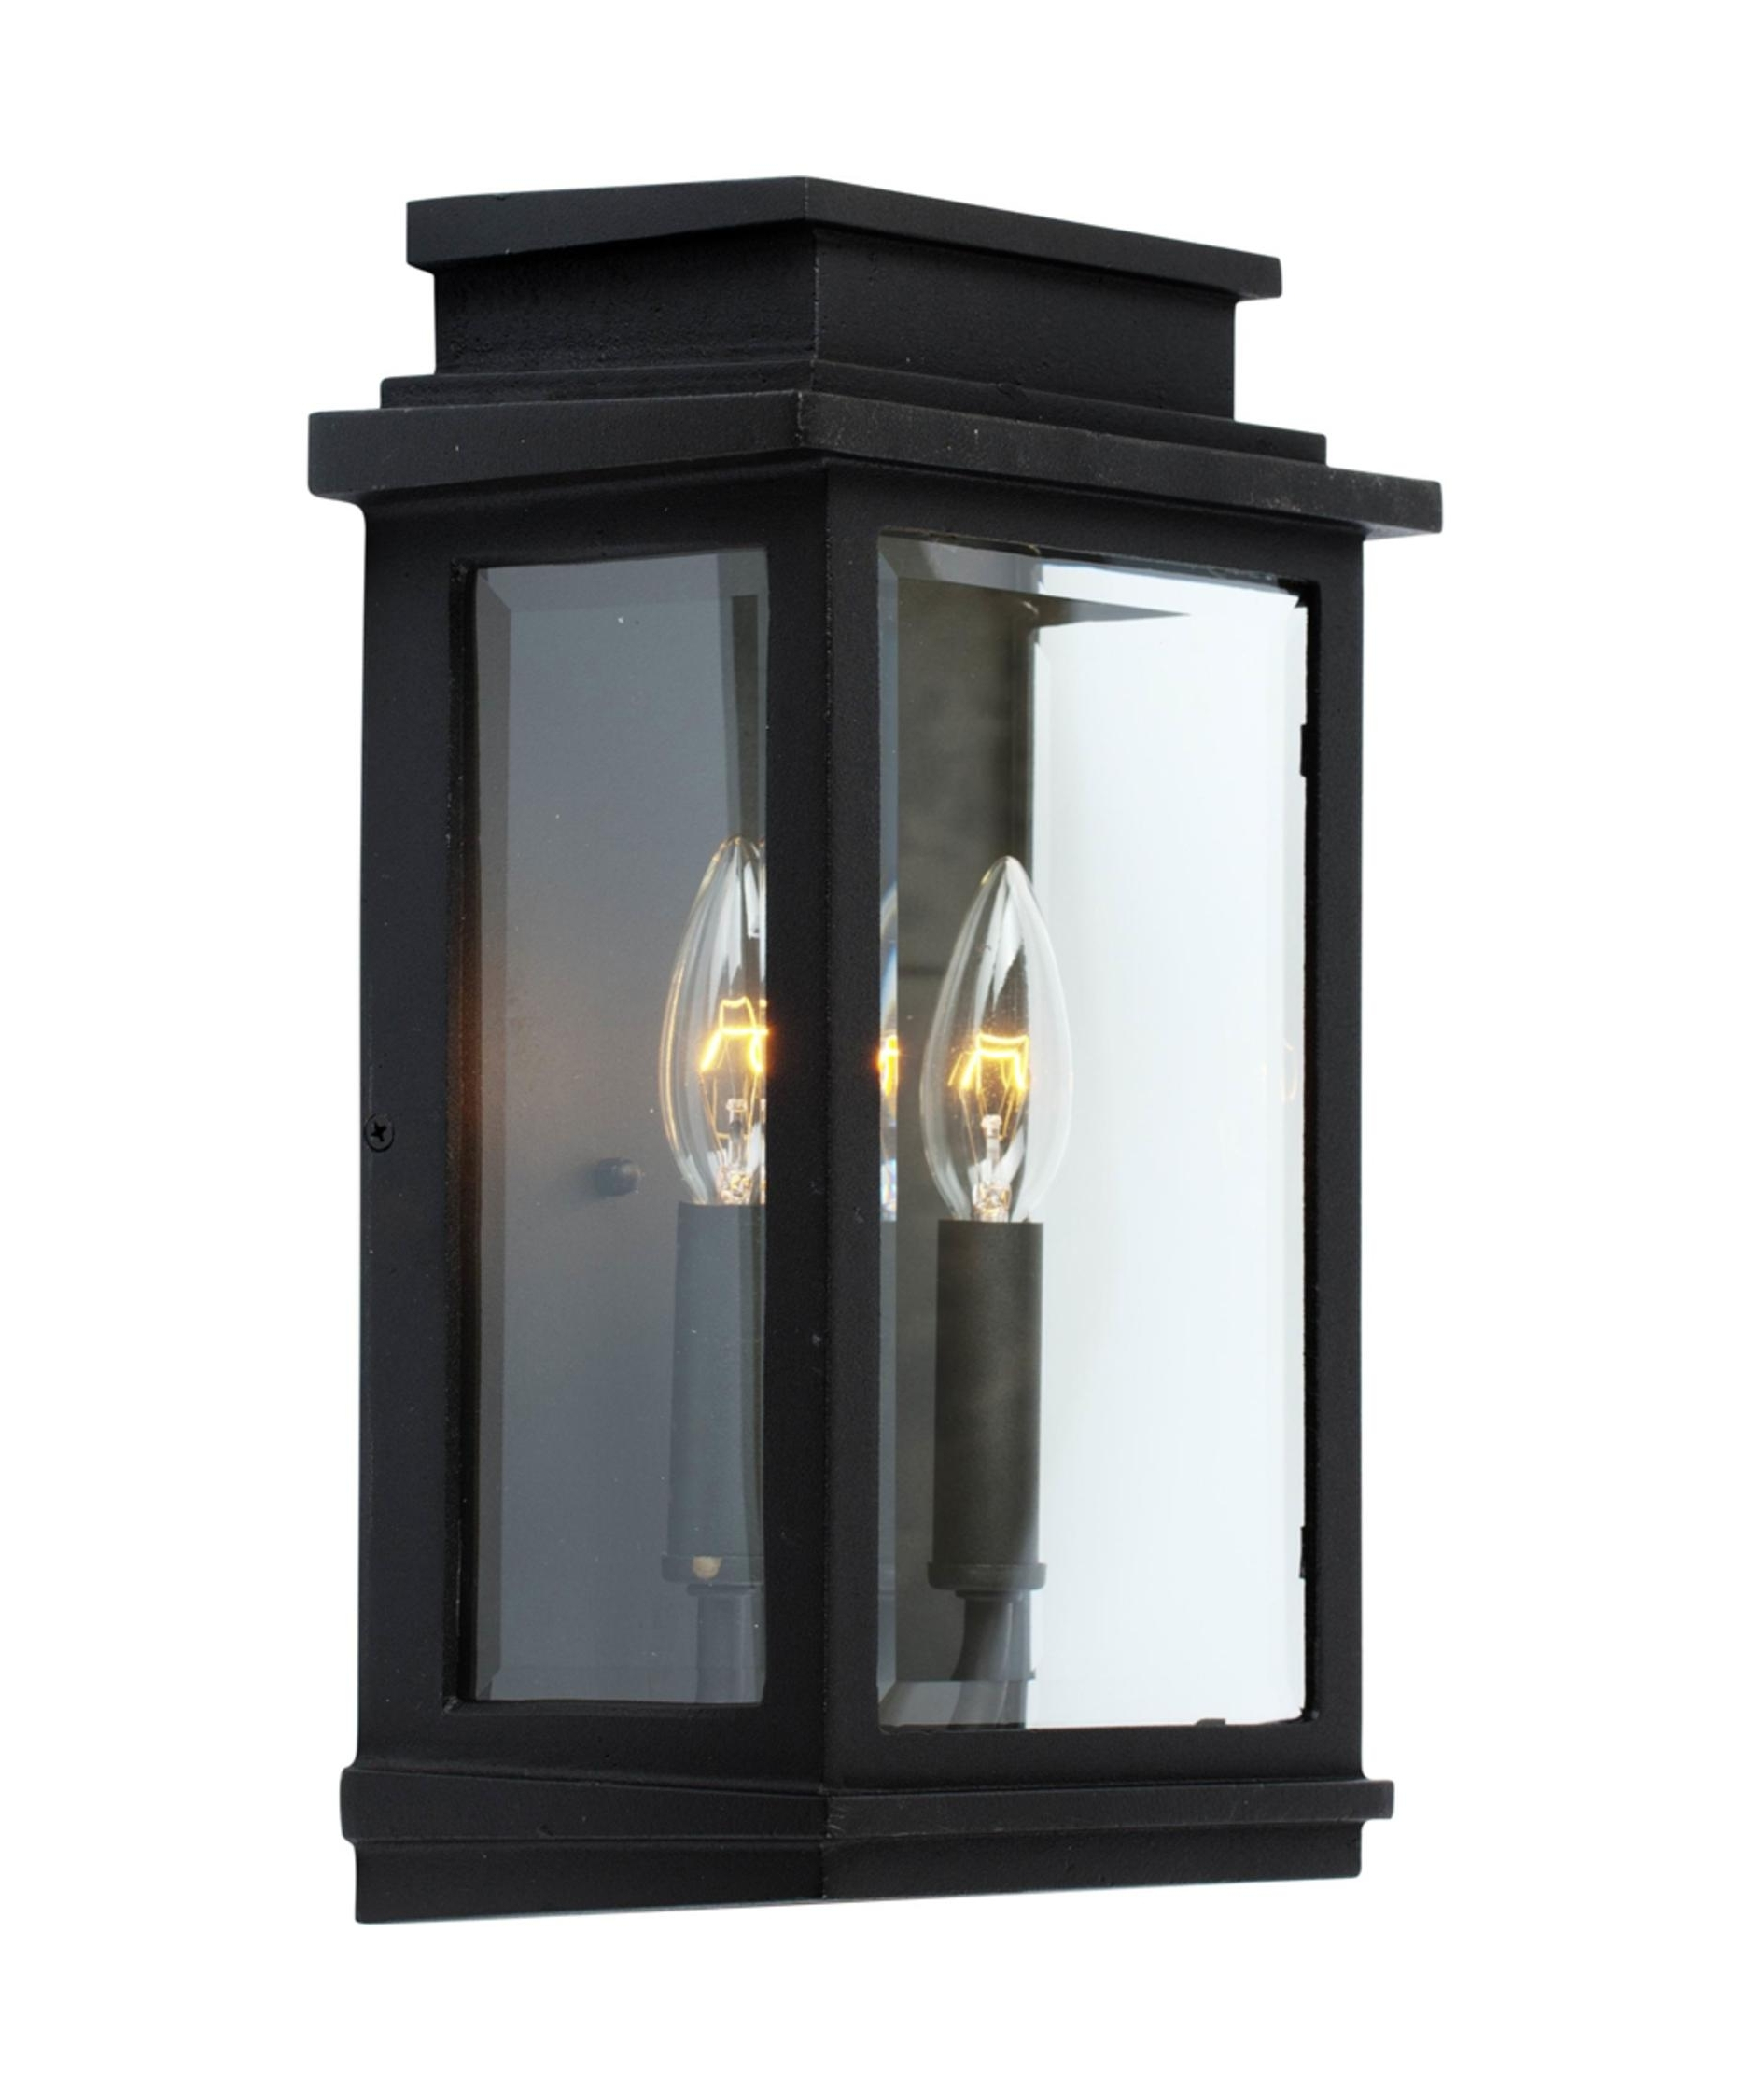 Outdoor Wall Light Glass Inside Most Up To Date Artcraft Ac8391 Fremont 9 Inch Wide 2 Light Outdoor Wall Light (View 14 of 20)